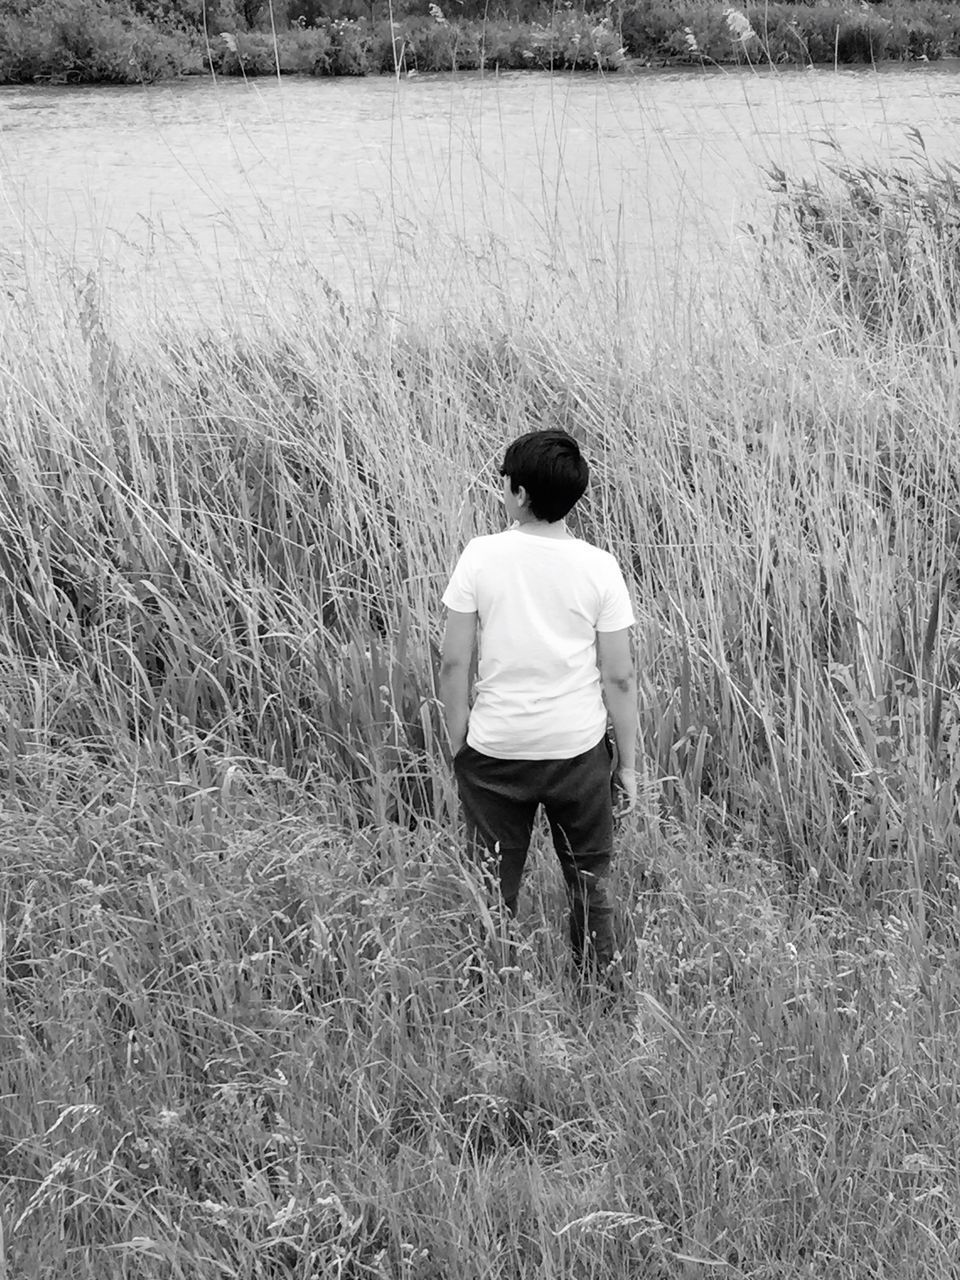 rear view, real people, field, nature, grass, full length, growth, one person, leisure activity, walking, casual clothing, standing, beauty in nature, outdoors, day, landscape, lifestyles, tranquility, men